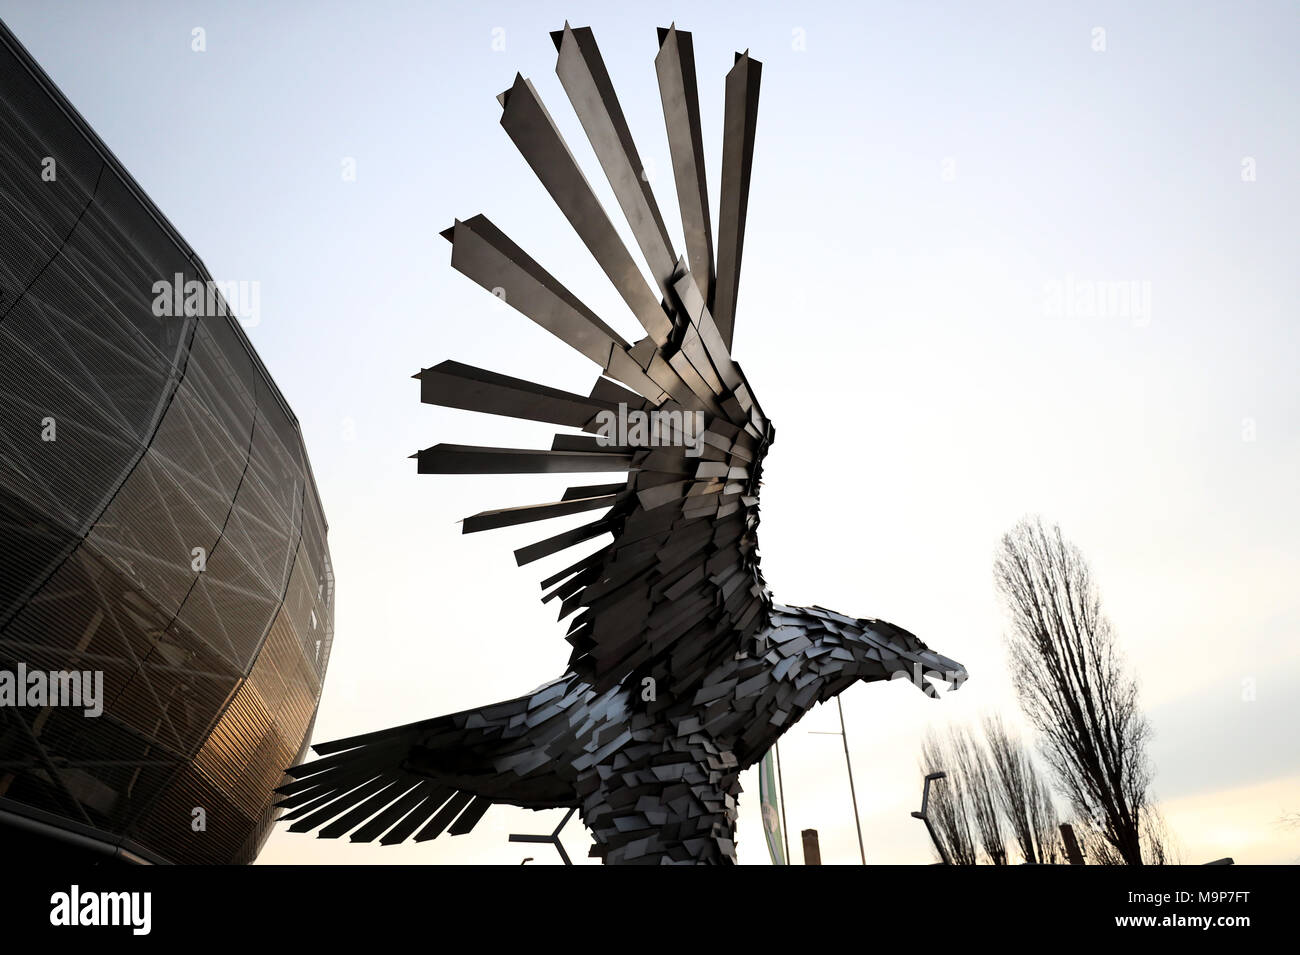 A general view of the Ferencvaros eagle sculpture outside the ...